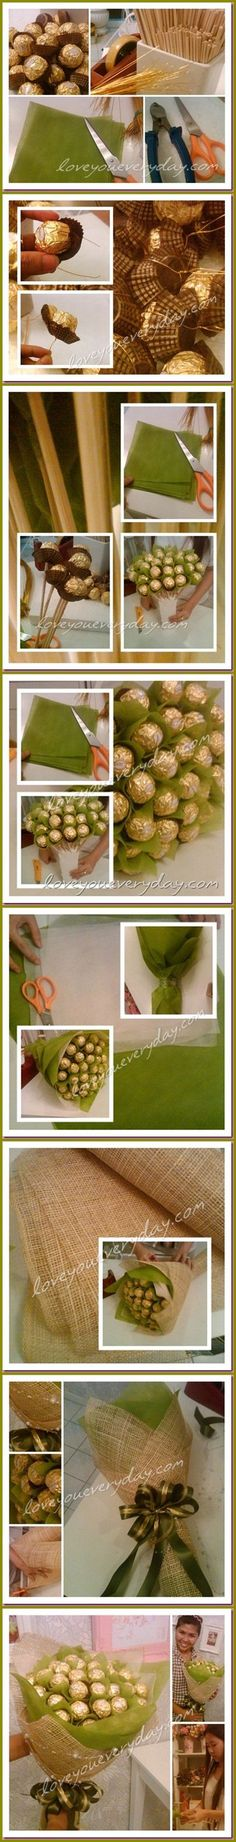 DIY - Chocolate Flower Bouquet - Ramo de Ferrero Rocher